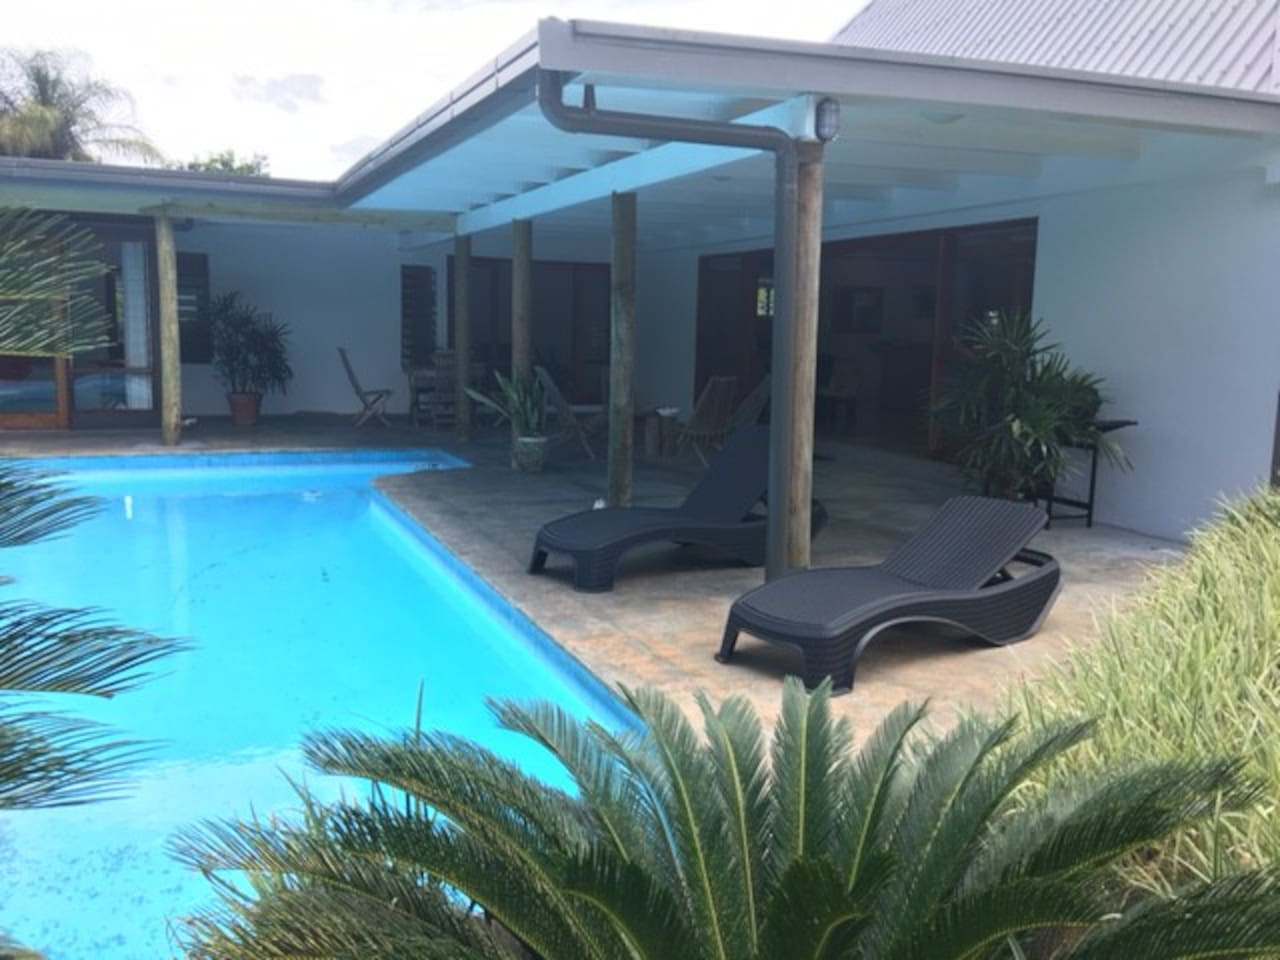 loungers and pool area